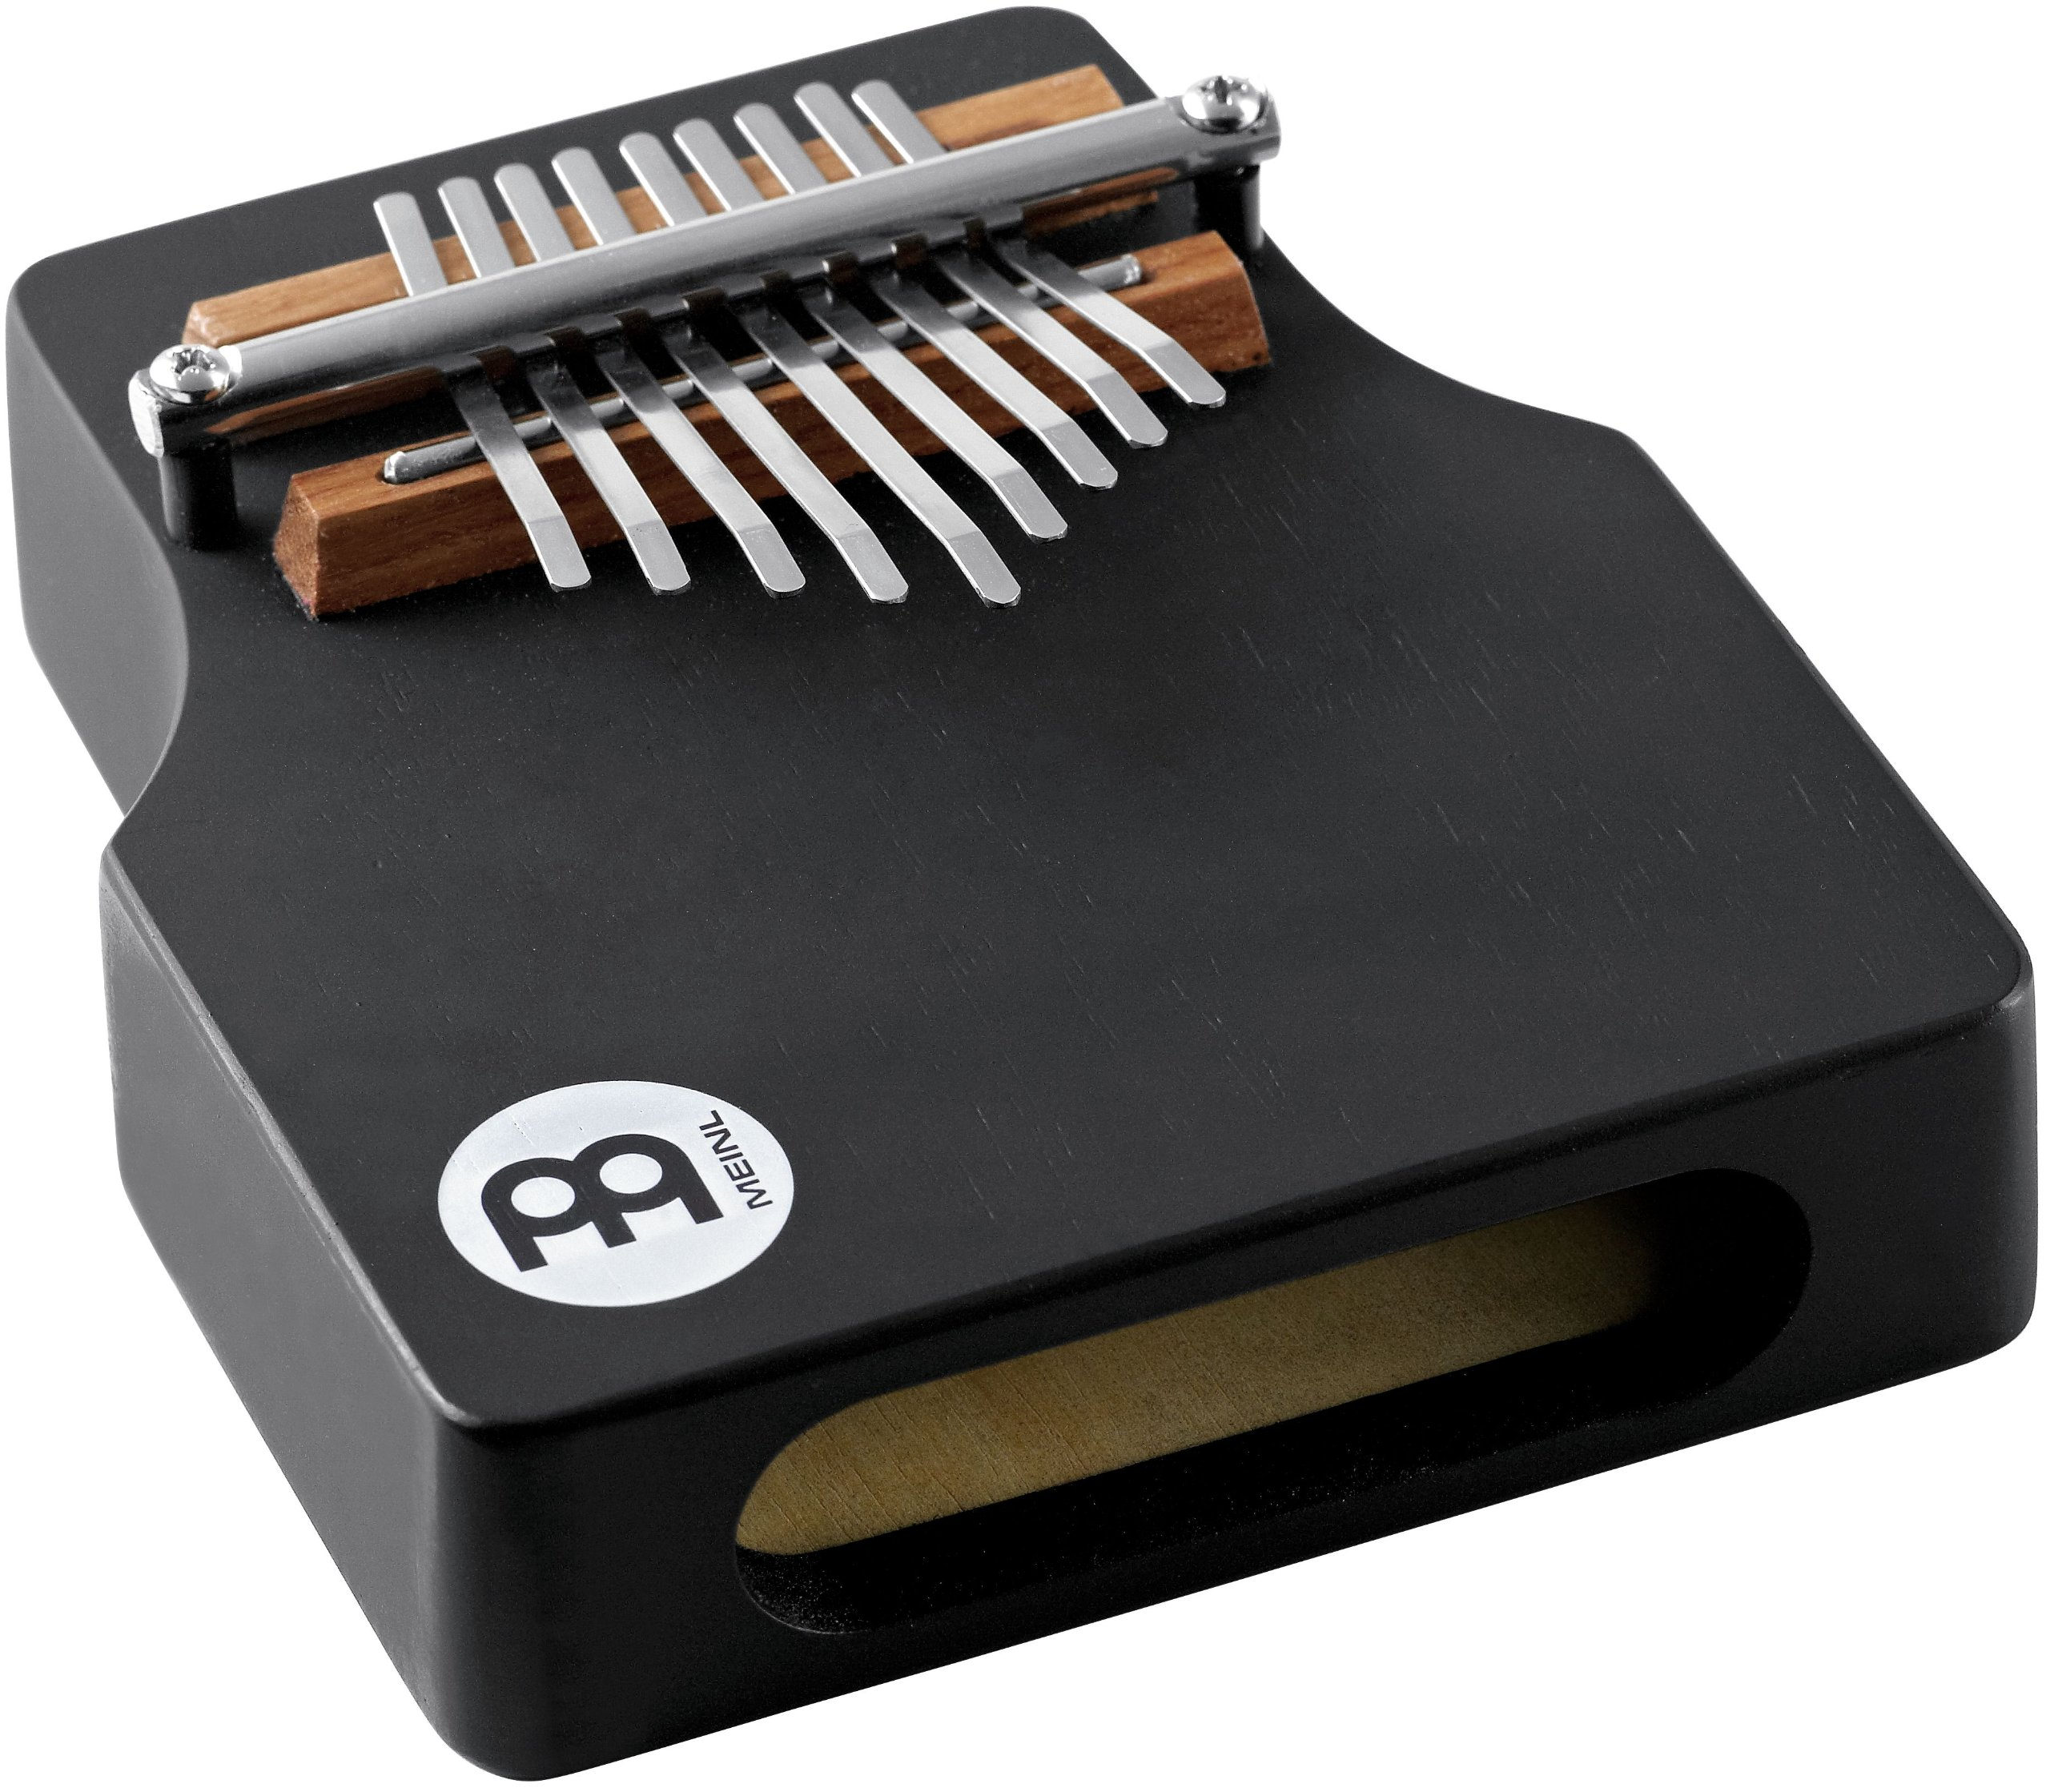 Meinl Percussion KA9WW-BK Wah Wah Effect Wood Kalimba, Black